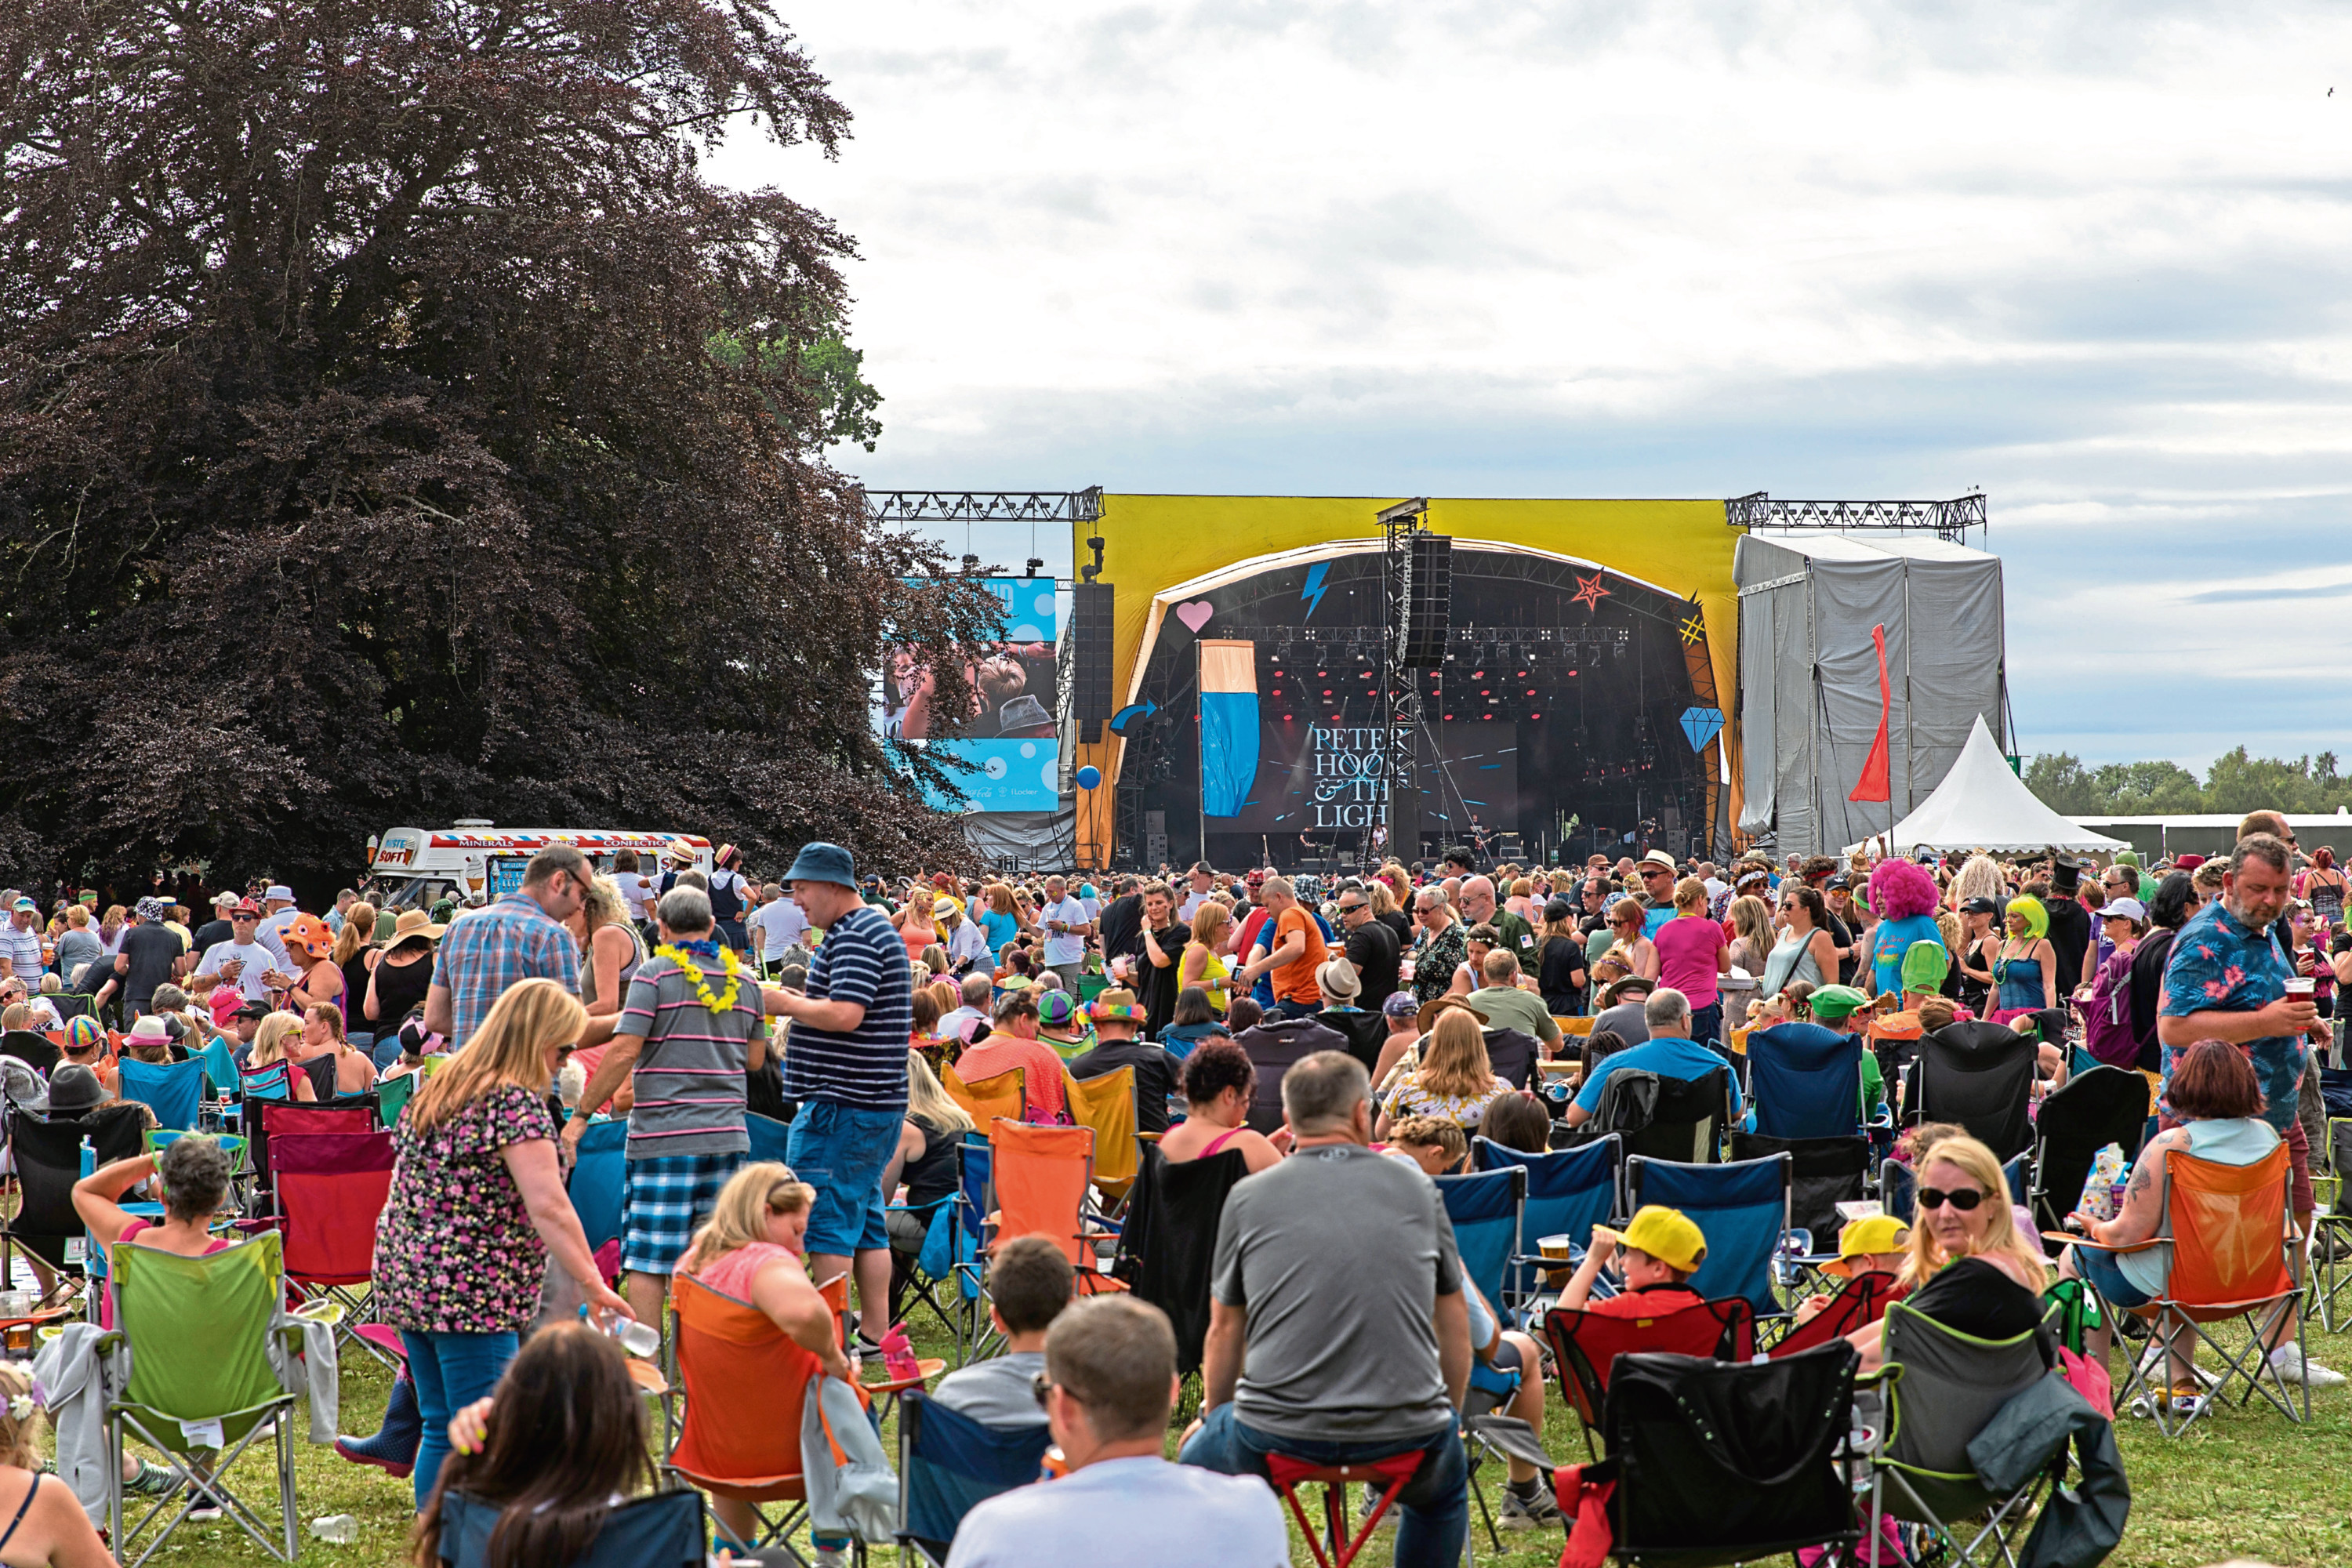 Rewind Festival 2018 at Scone Palace, Perthshire